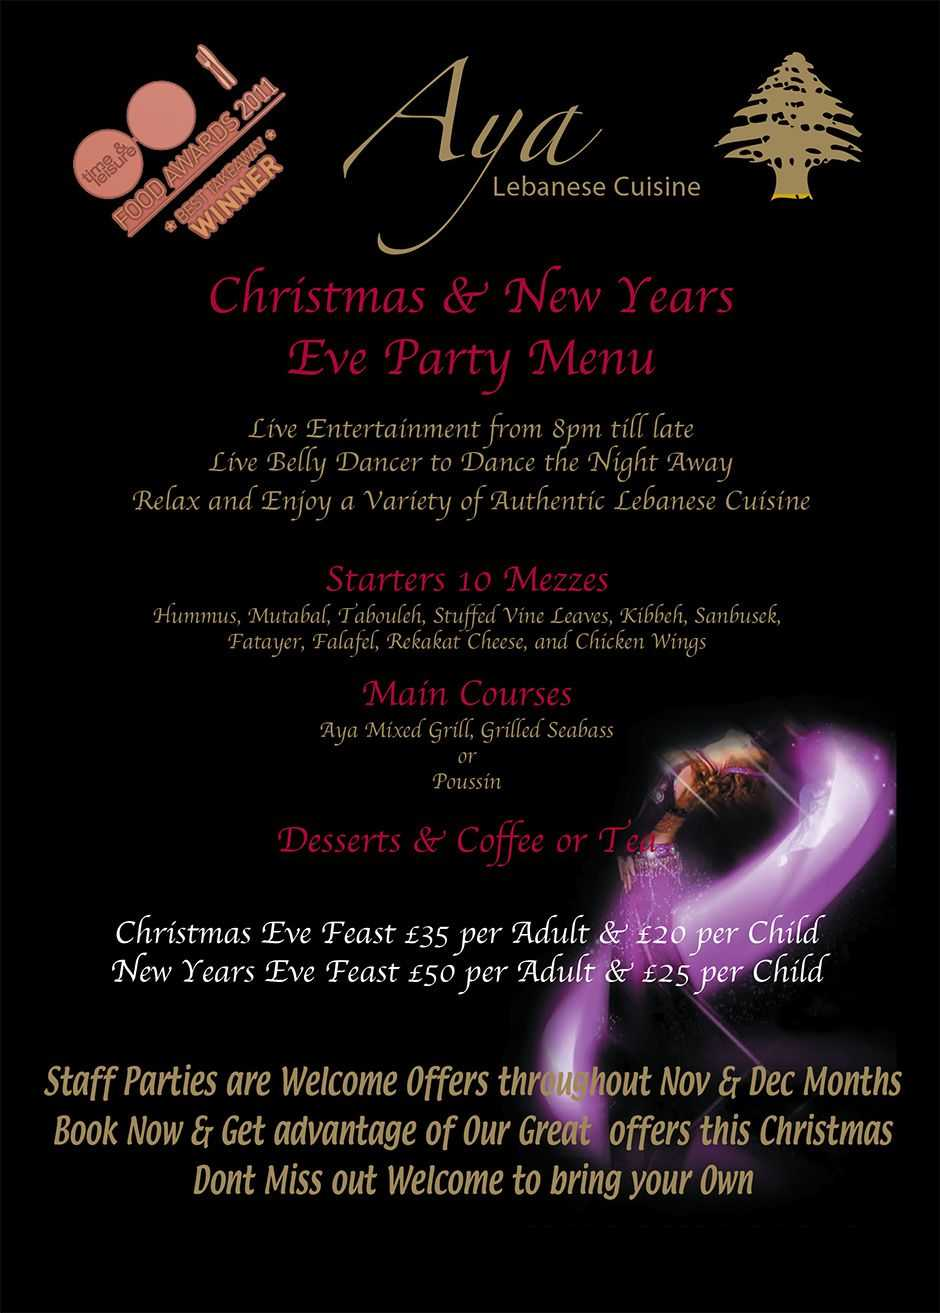 Christmas & New Year's Eve 2012 Party Menu